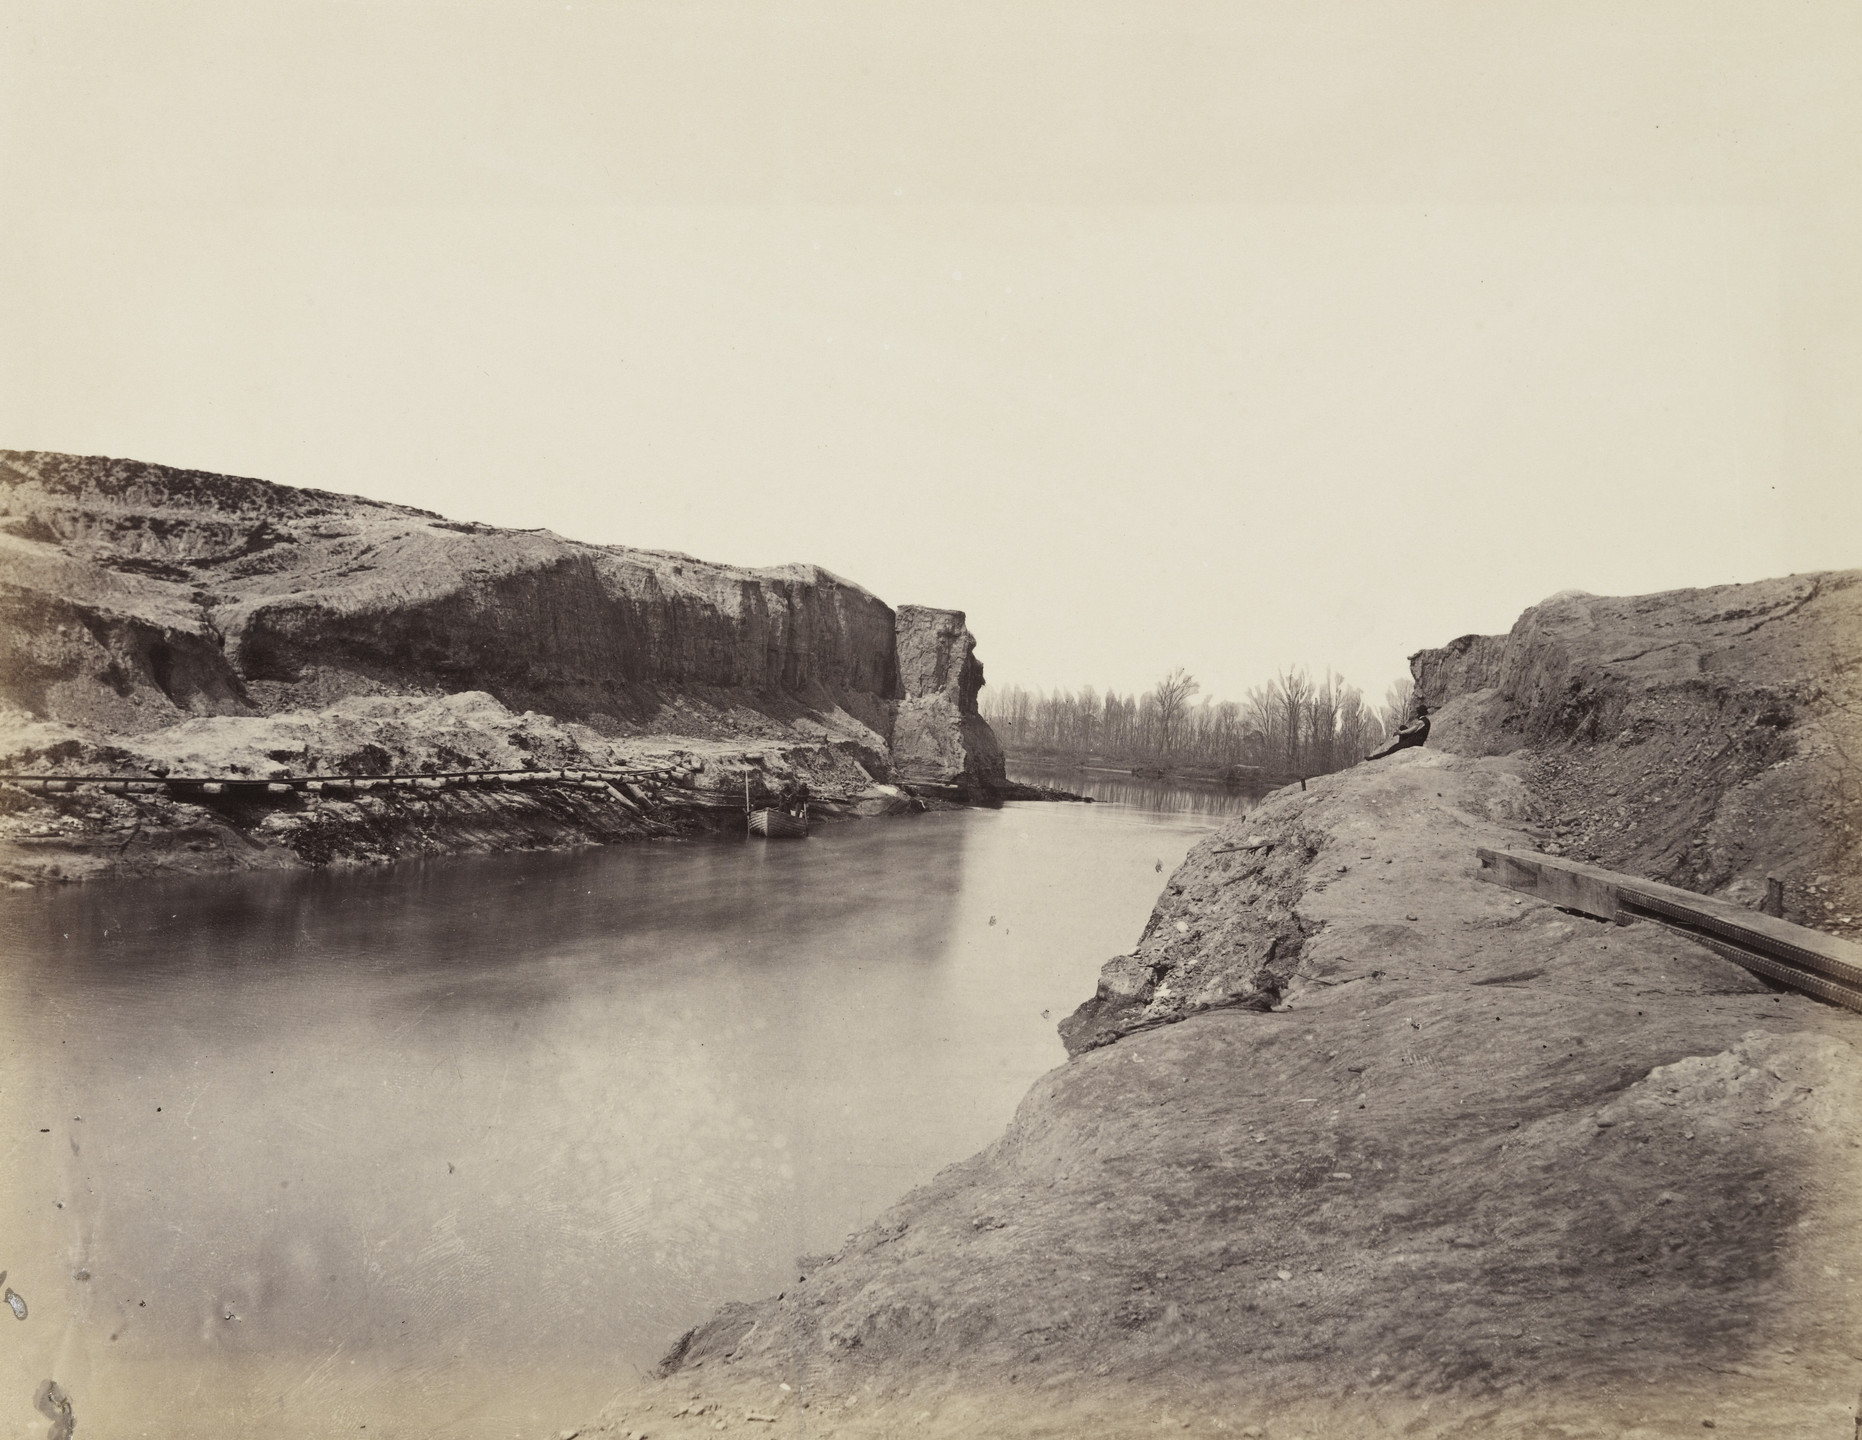 Alexander Gardner. Dutch Gap Canal, James River, Virginia. March, 1864